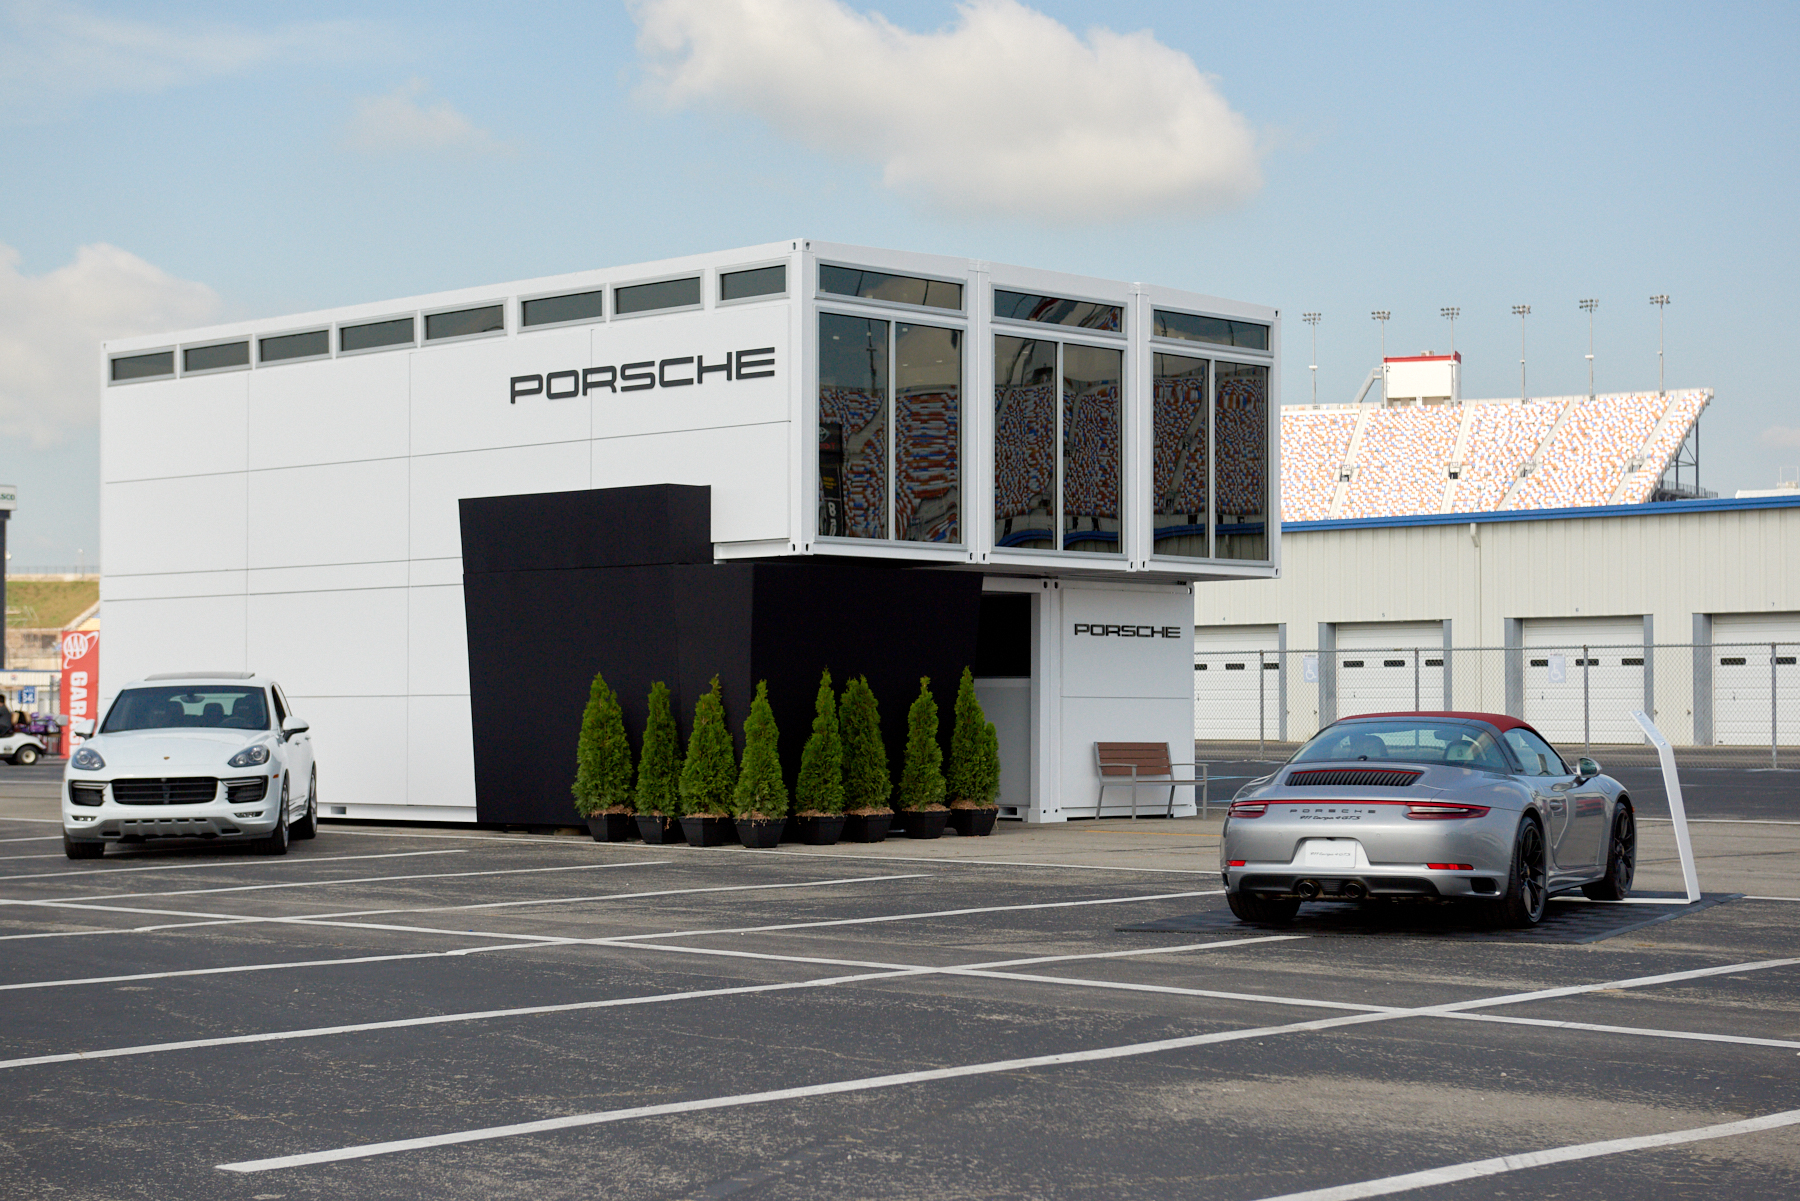 Porsche Shipping Containers